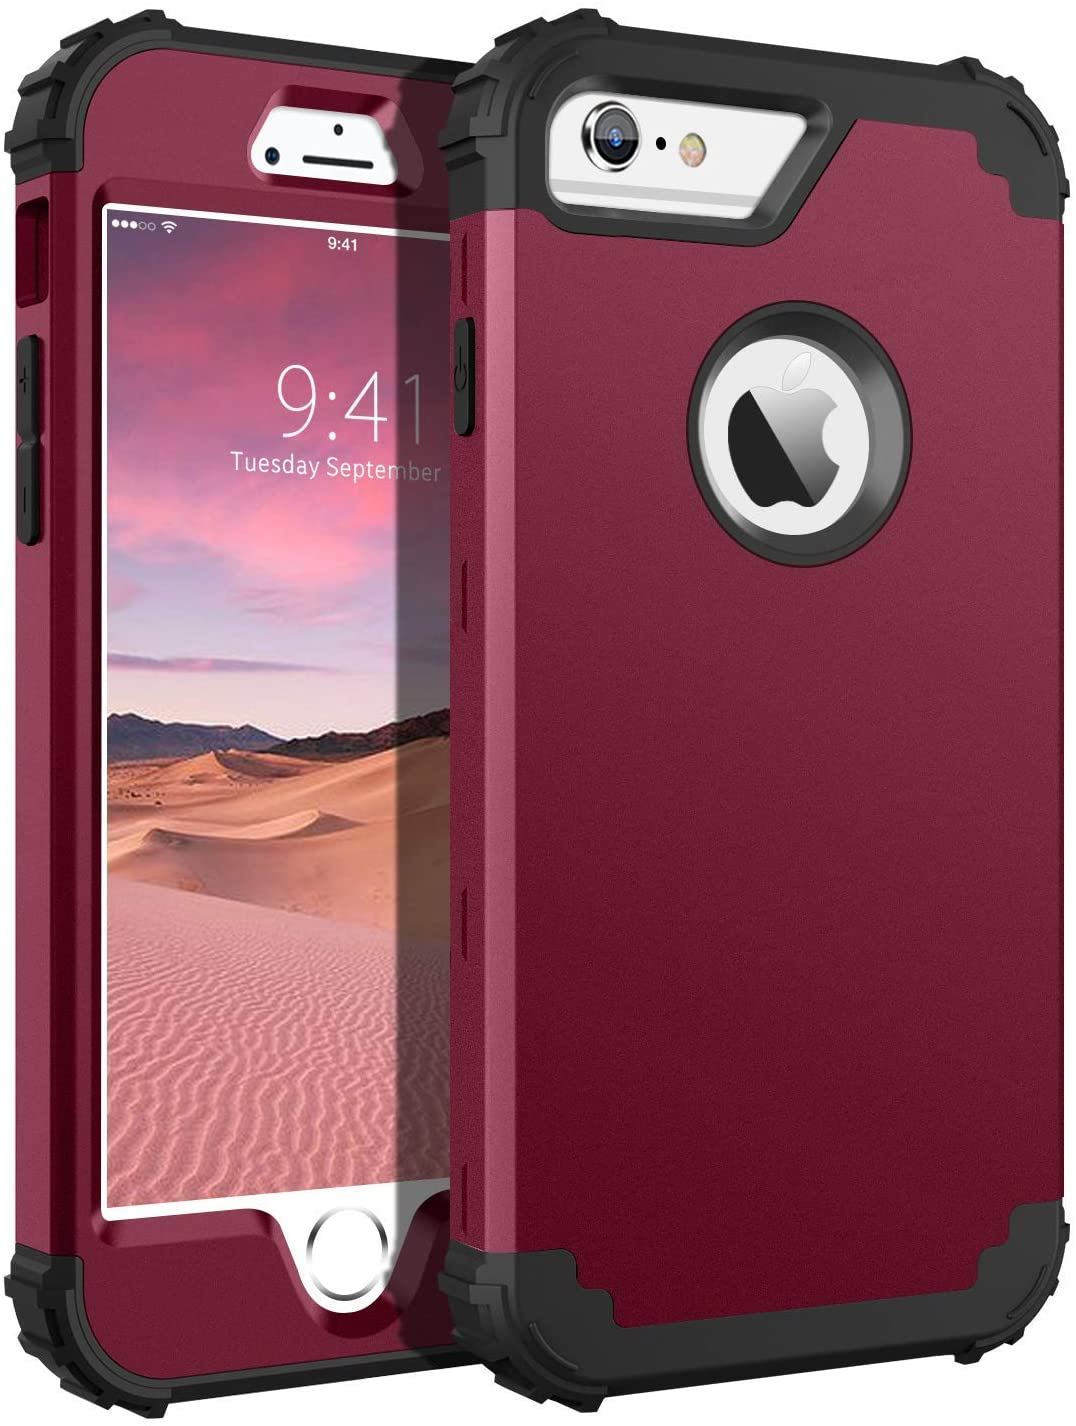 iPhone 6S Plus Case, iPhone 6 Plus Case, BENTOBEN Heavy Duty Shockproof 3 in 1 Slim Hybrid Hard PC Soft Silicone Bumper Protective Phone Case Cover for iPhone 6S Plus/iPhone 6 Plus (5.5 Inch) Wine Red